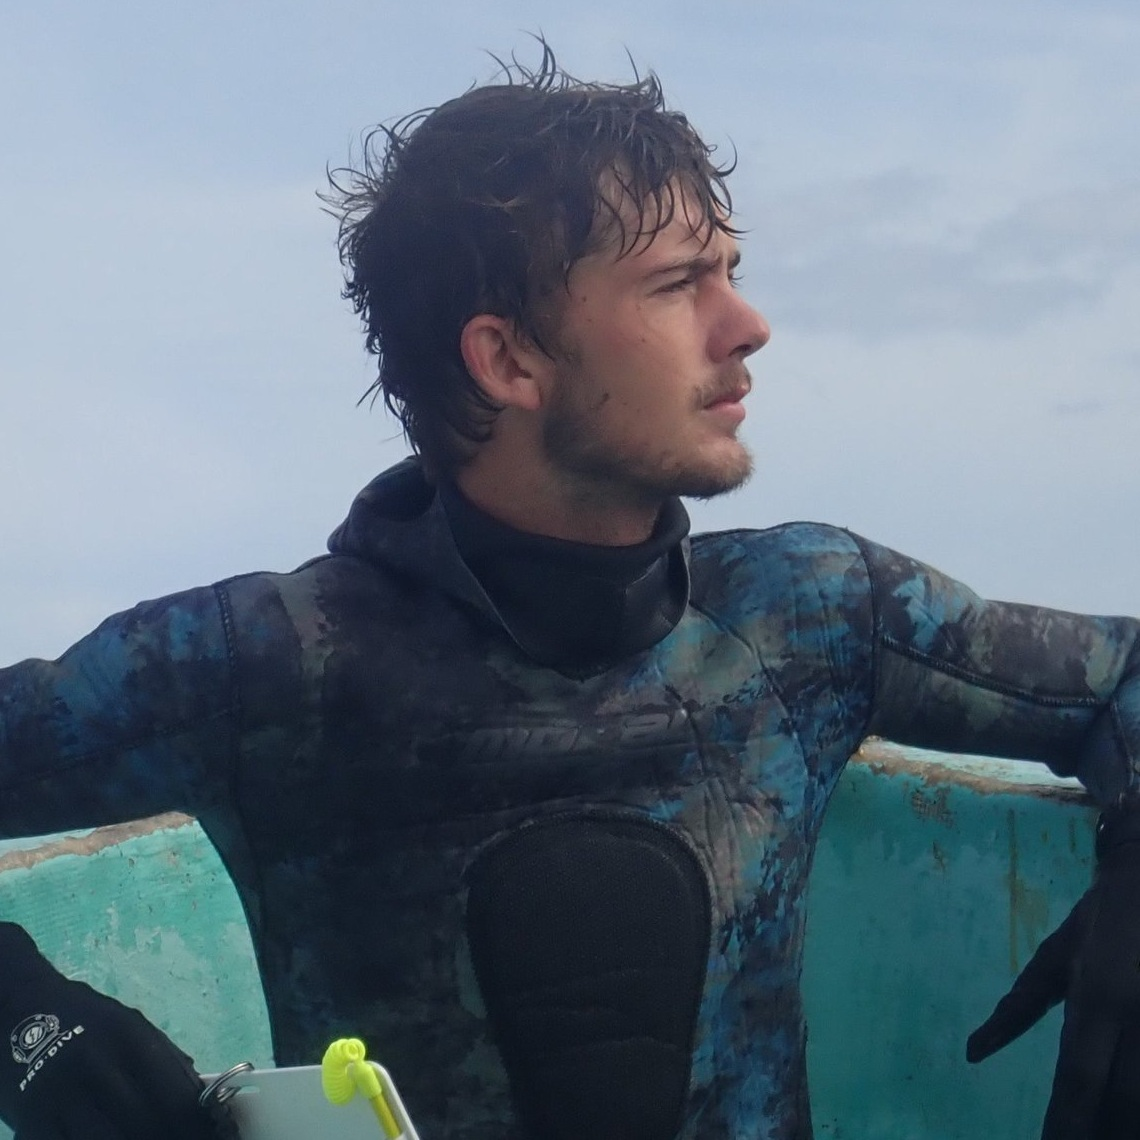 Zac Penman - I'm a scuba instructor/dive guide and I'm an Ocean Voice - New Zealand/Australia.